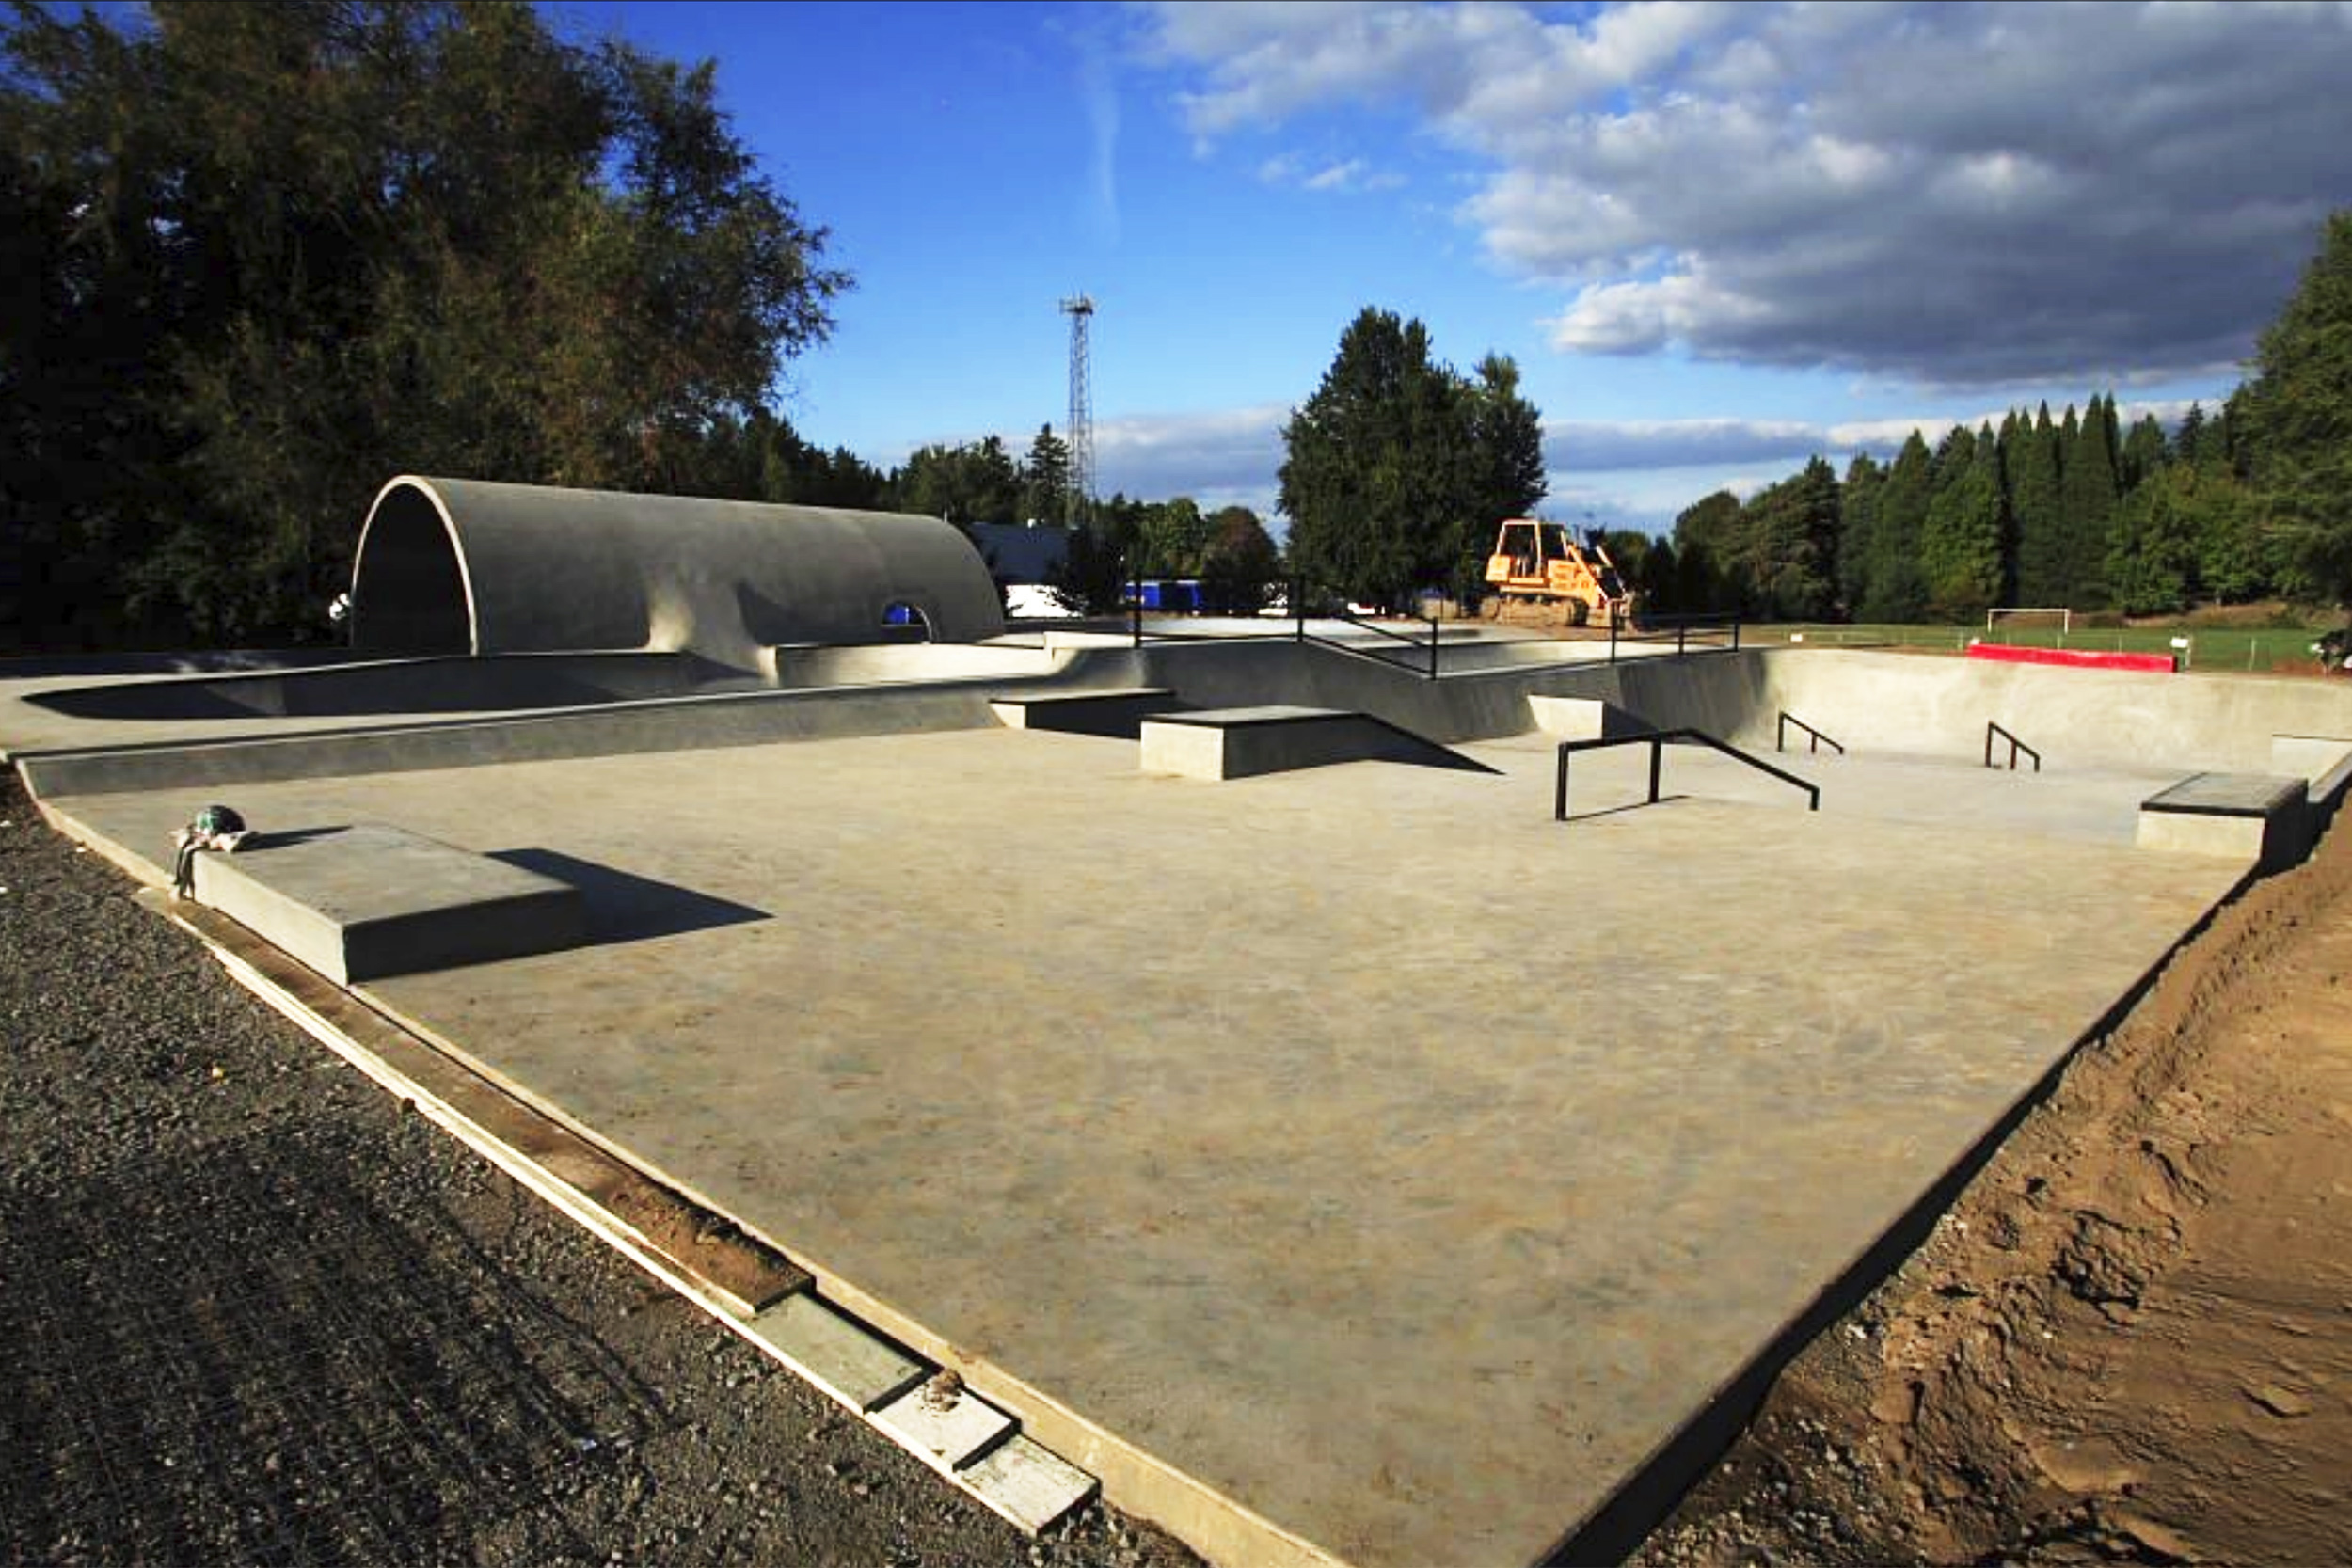 Pier Park's skatepark sits completed aside from its landscaping with opening day just around the corner.